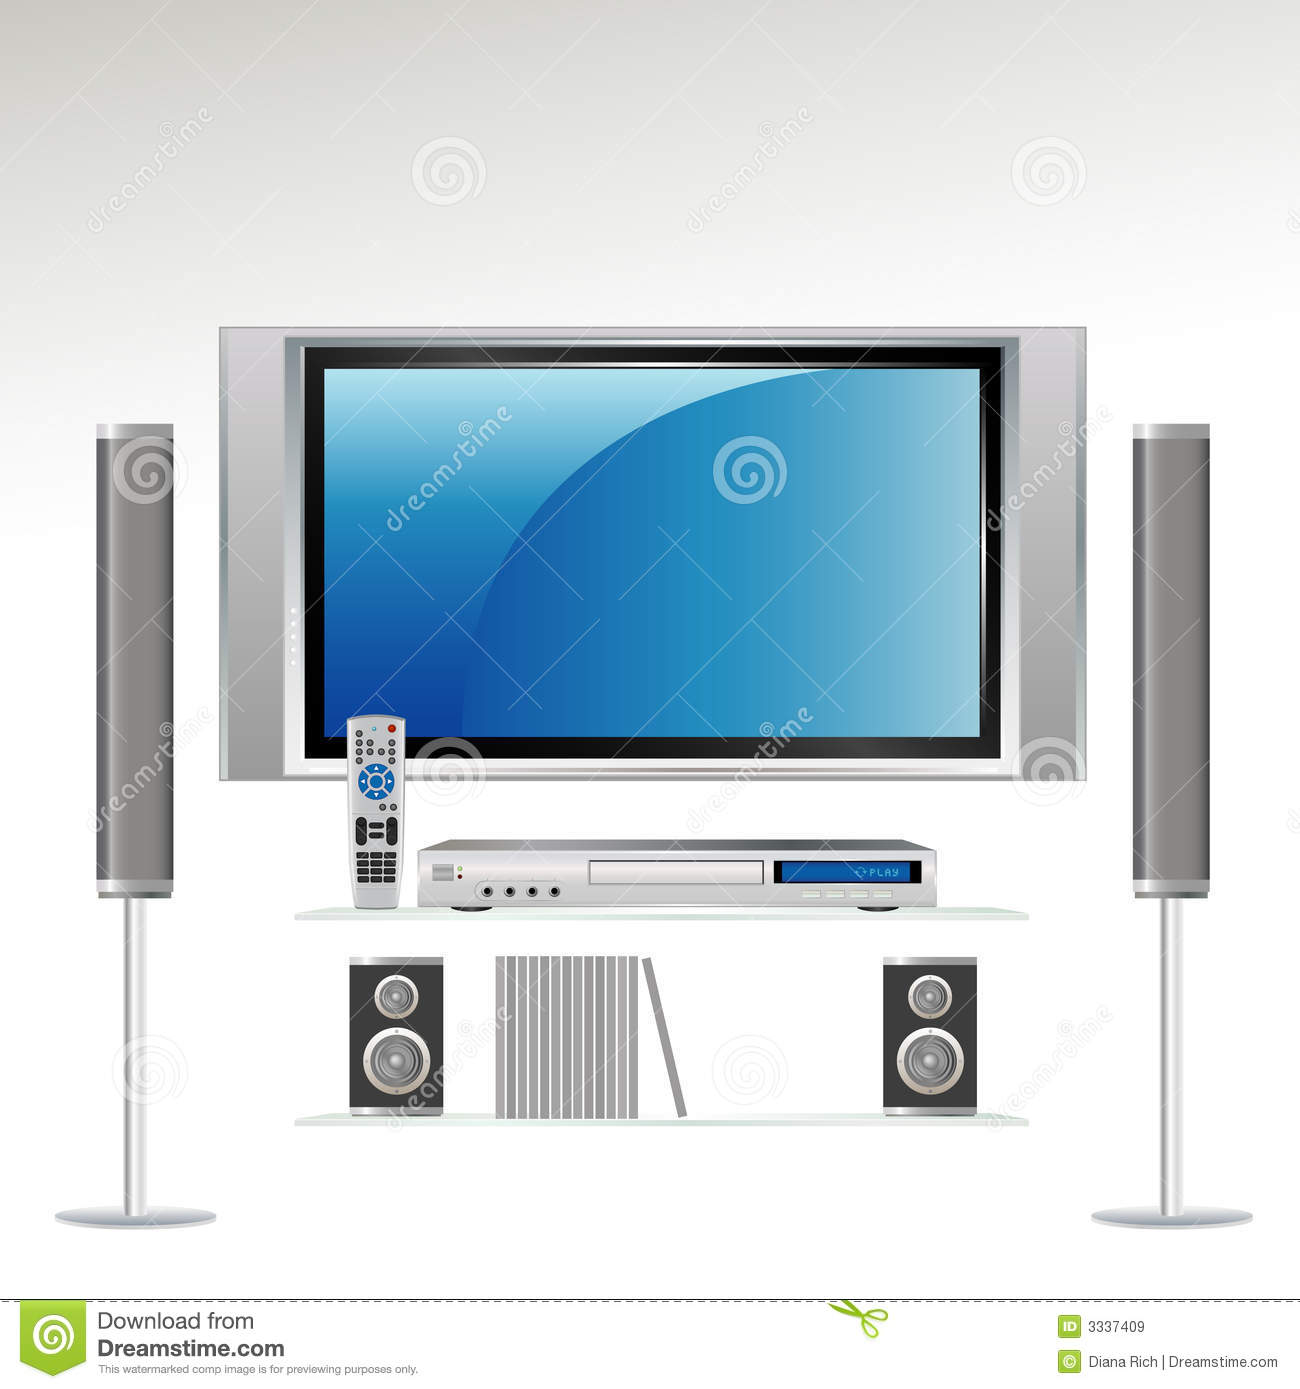 Television and components hookup